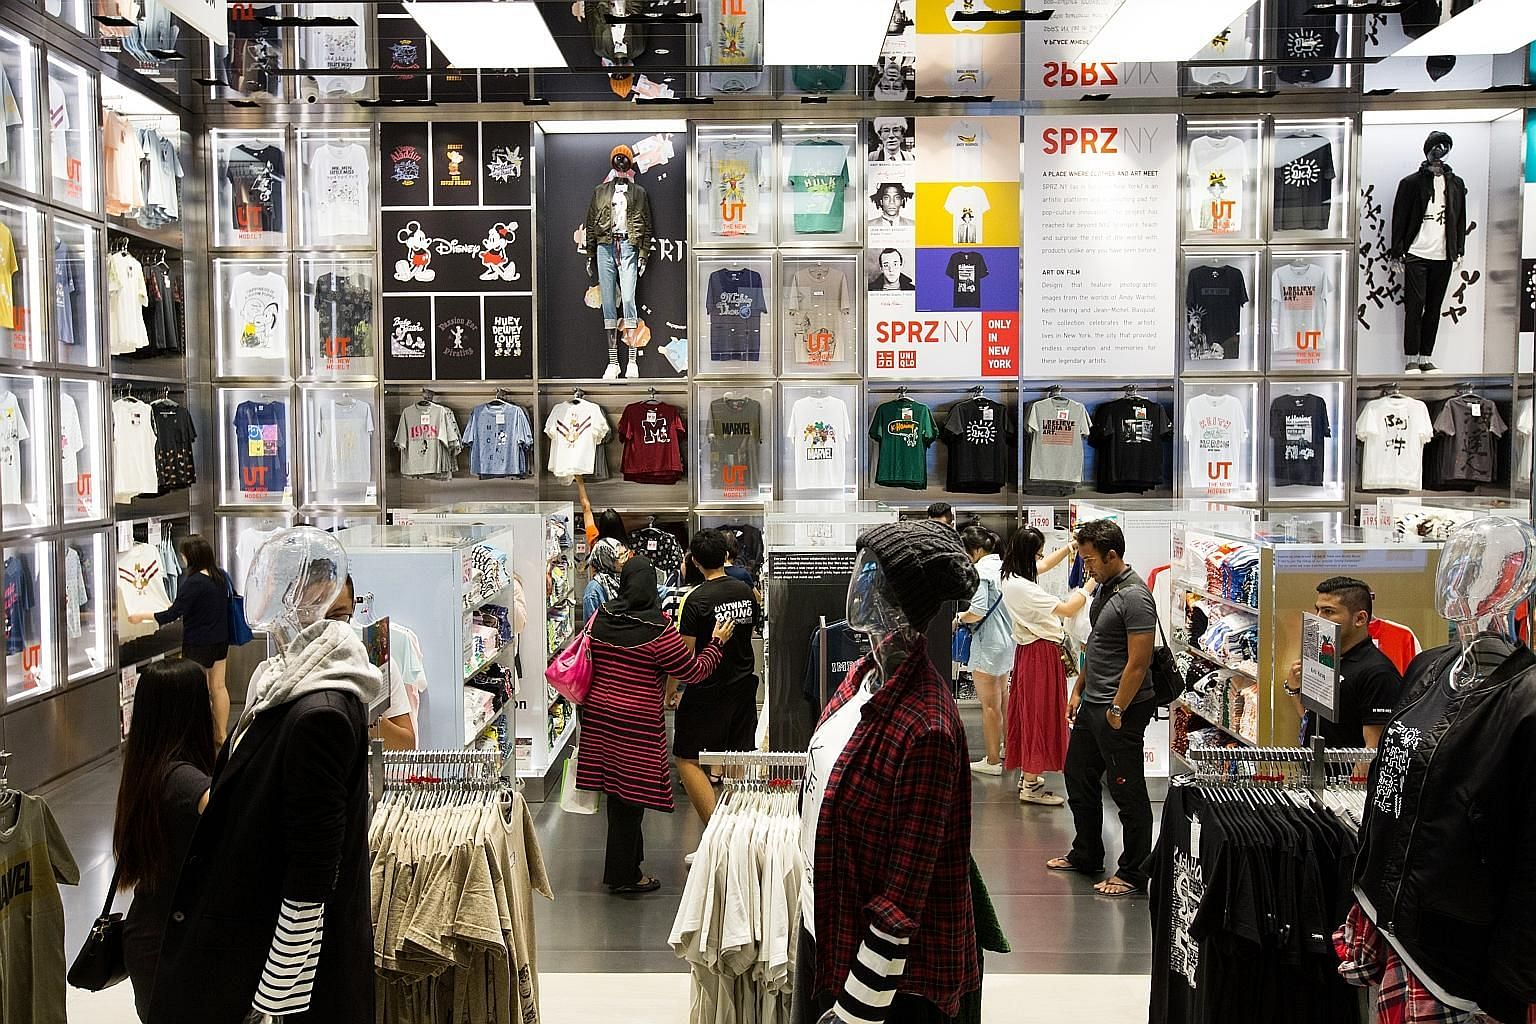 Wing Tai Retail manages the South-east Asian presence of global brands such as Uniqlo (above), Adidas and Topshop. Since late last year, Wing Tai has been reviewing business operations in close consultation with the Singapore Industrial and Services